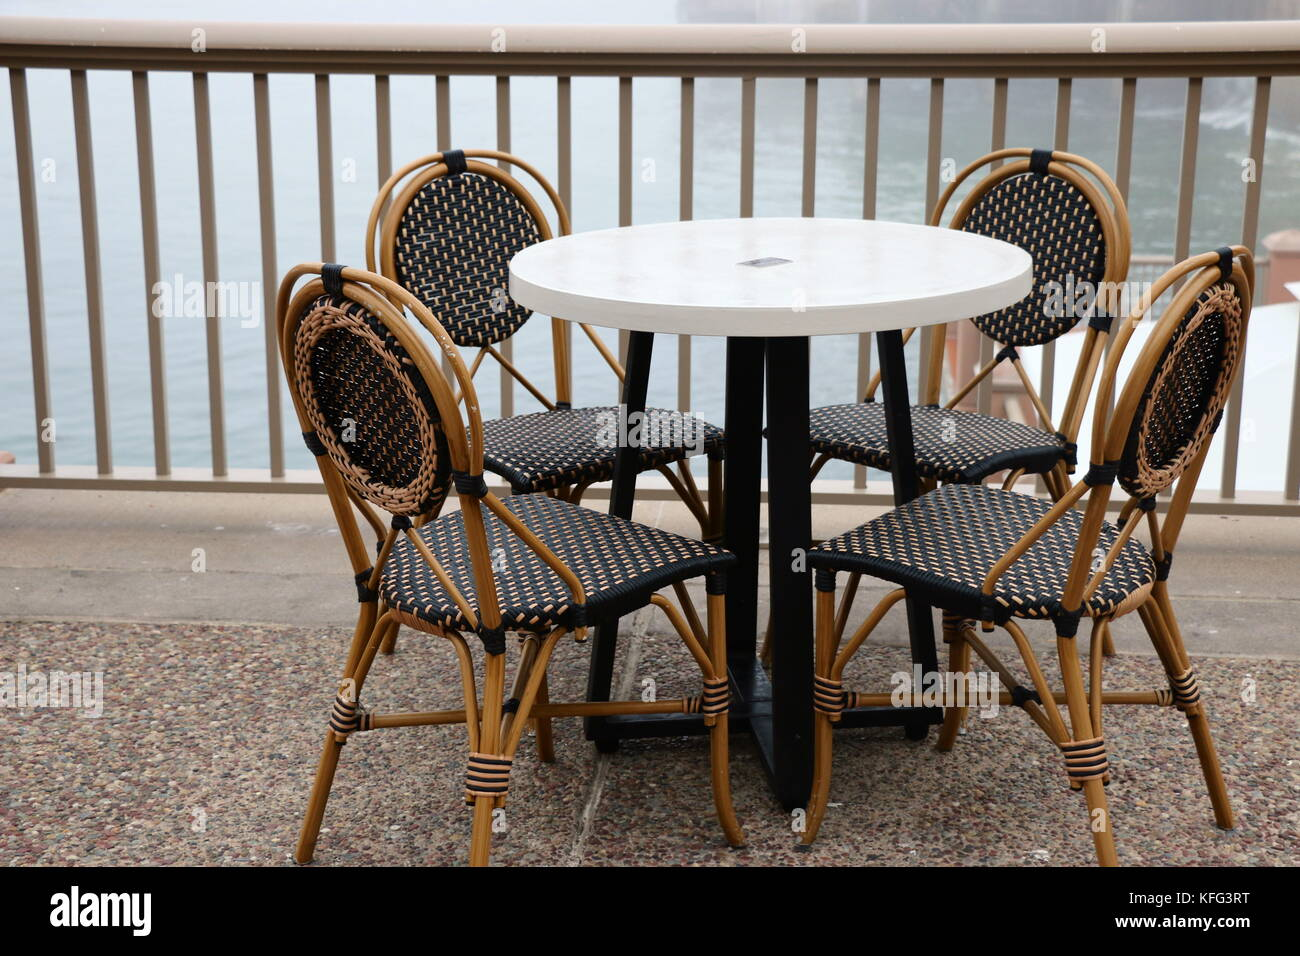 Superieur Cafe Table And Chairs, French Bistro Style.   Stock Image